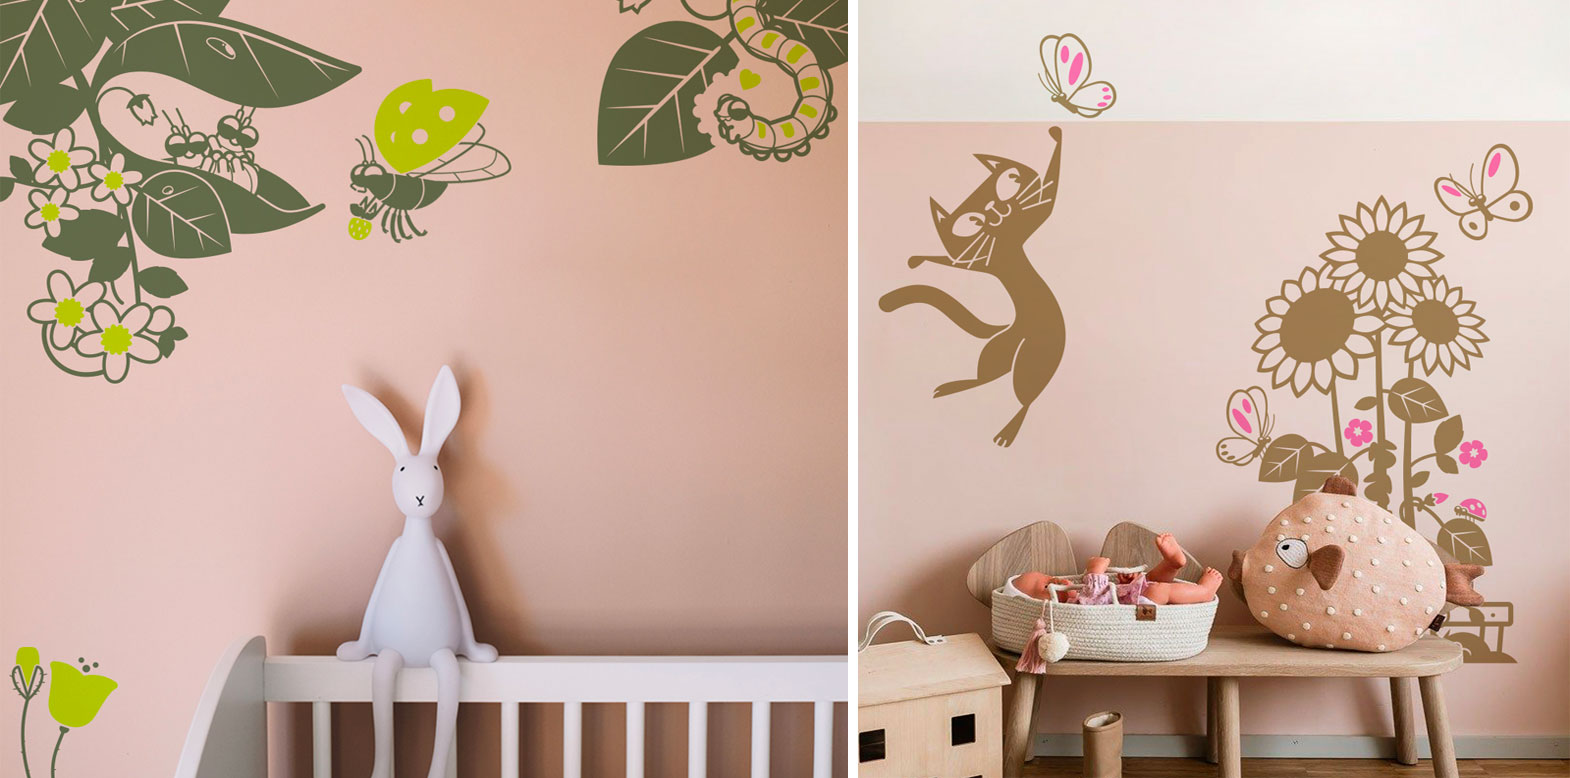 E-Glue wall decals for kids room theme nature